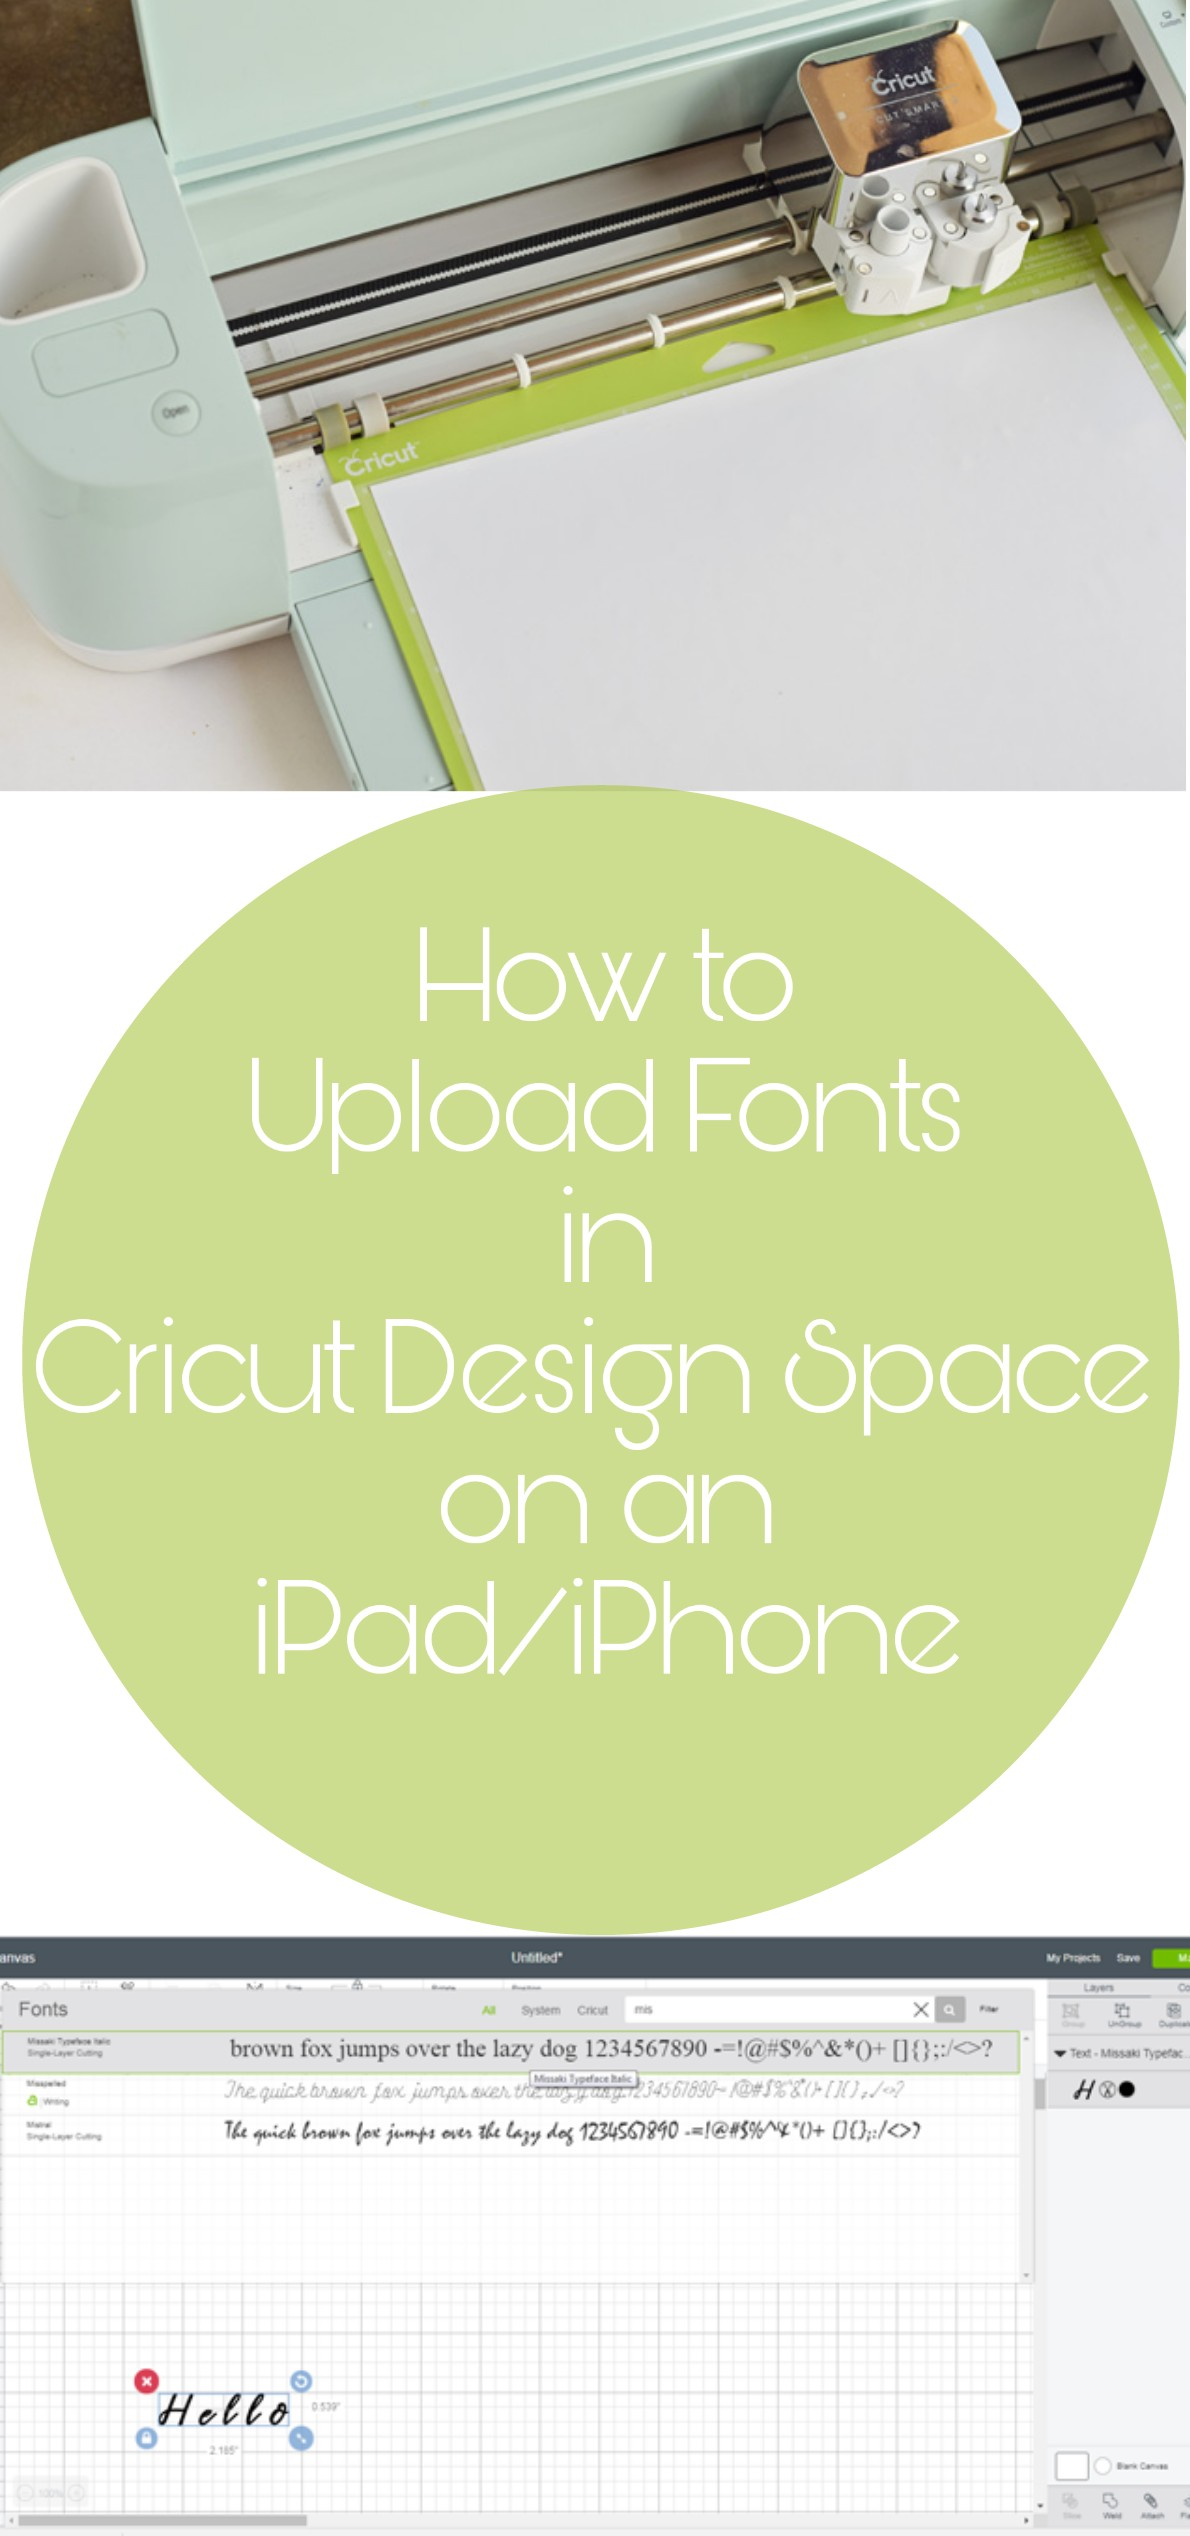 How to Upload Fonts into Cricut Design Space on an iPad or iPhone